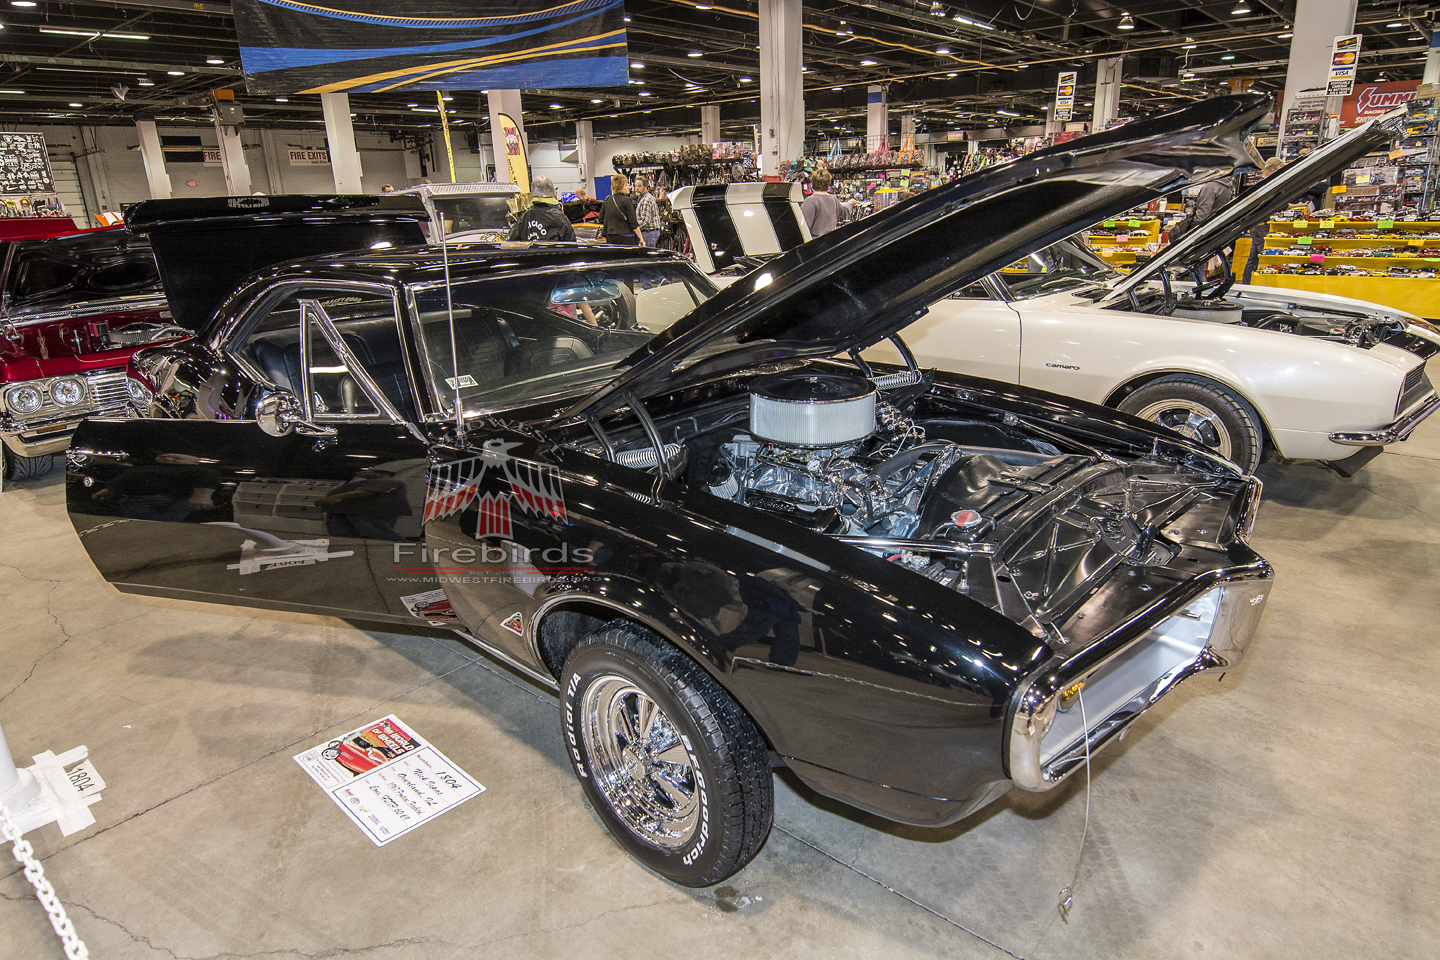 This black 1967 Pontiac Firebird coupe was on display at the 2014 World of Wheels Chicago car show.